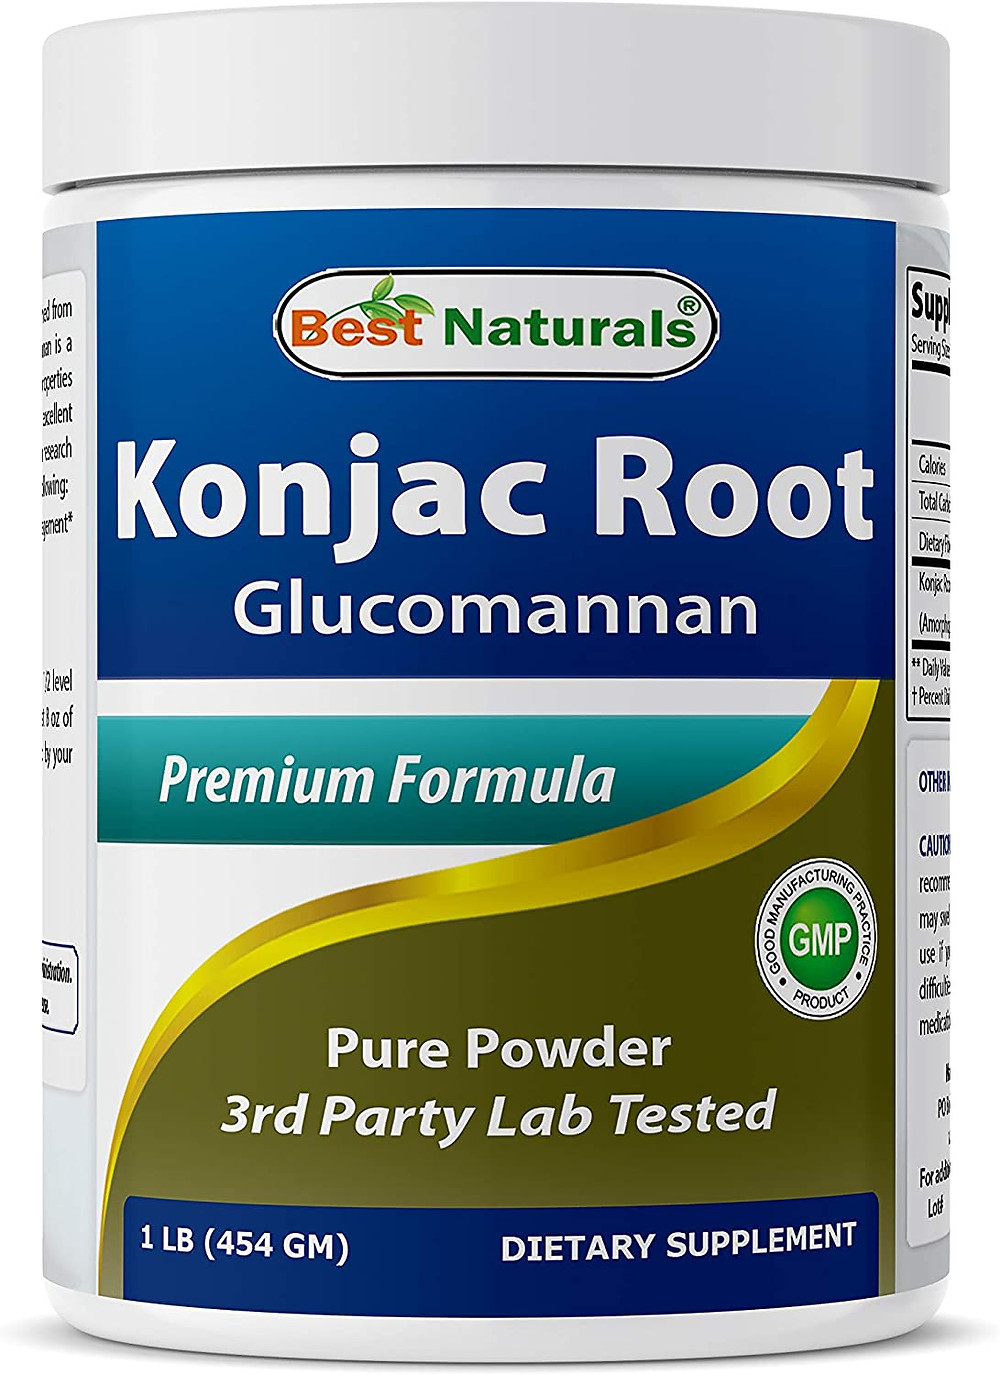 Glucomanman is a great cornstarch replacement for converting recipes to keto healthy Konjac root is a probiotic too